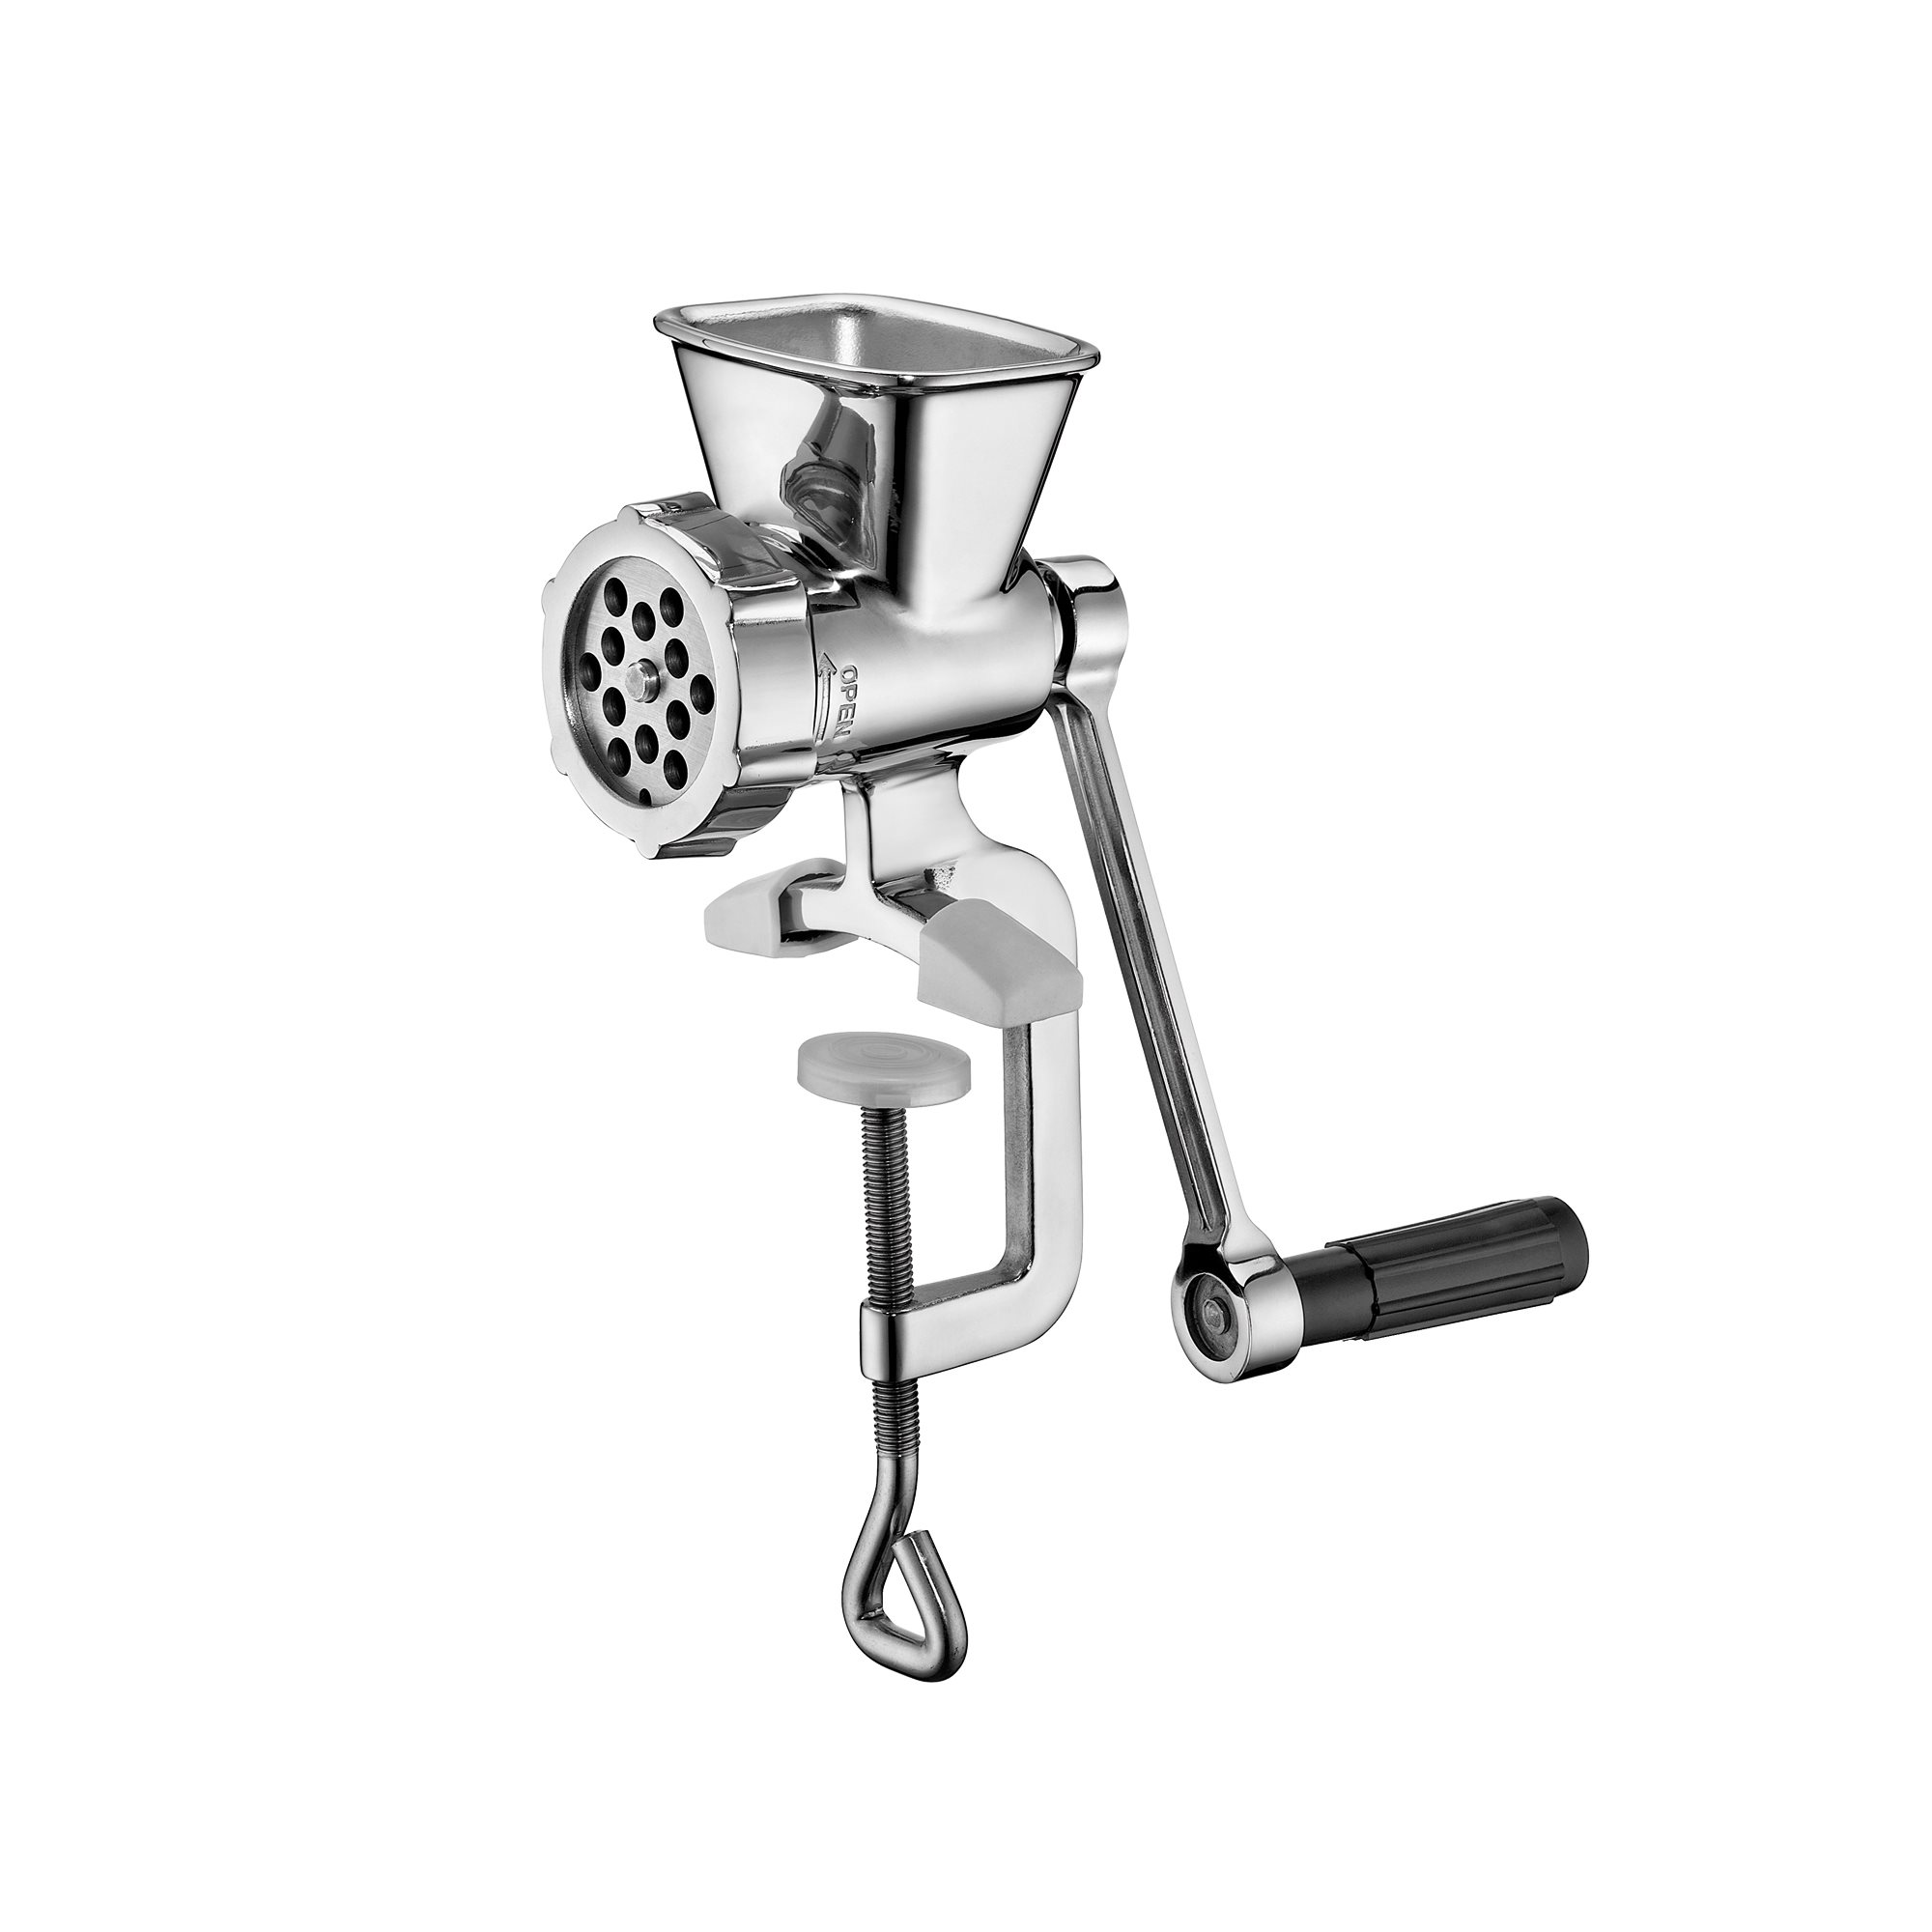 Küchenprofi Thermometer Digital KÜchenprofi Meat Mincer Stainless Steel Size 5 With Biscuit Press Attachment